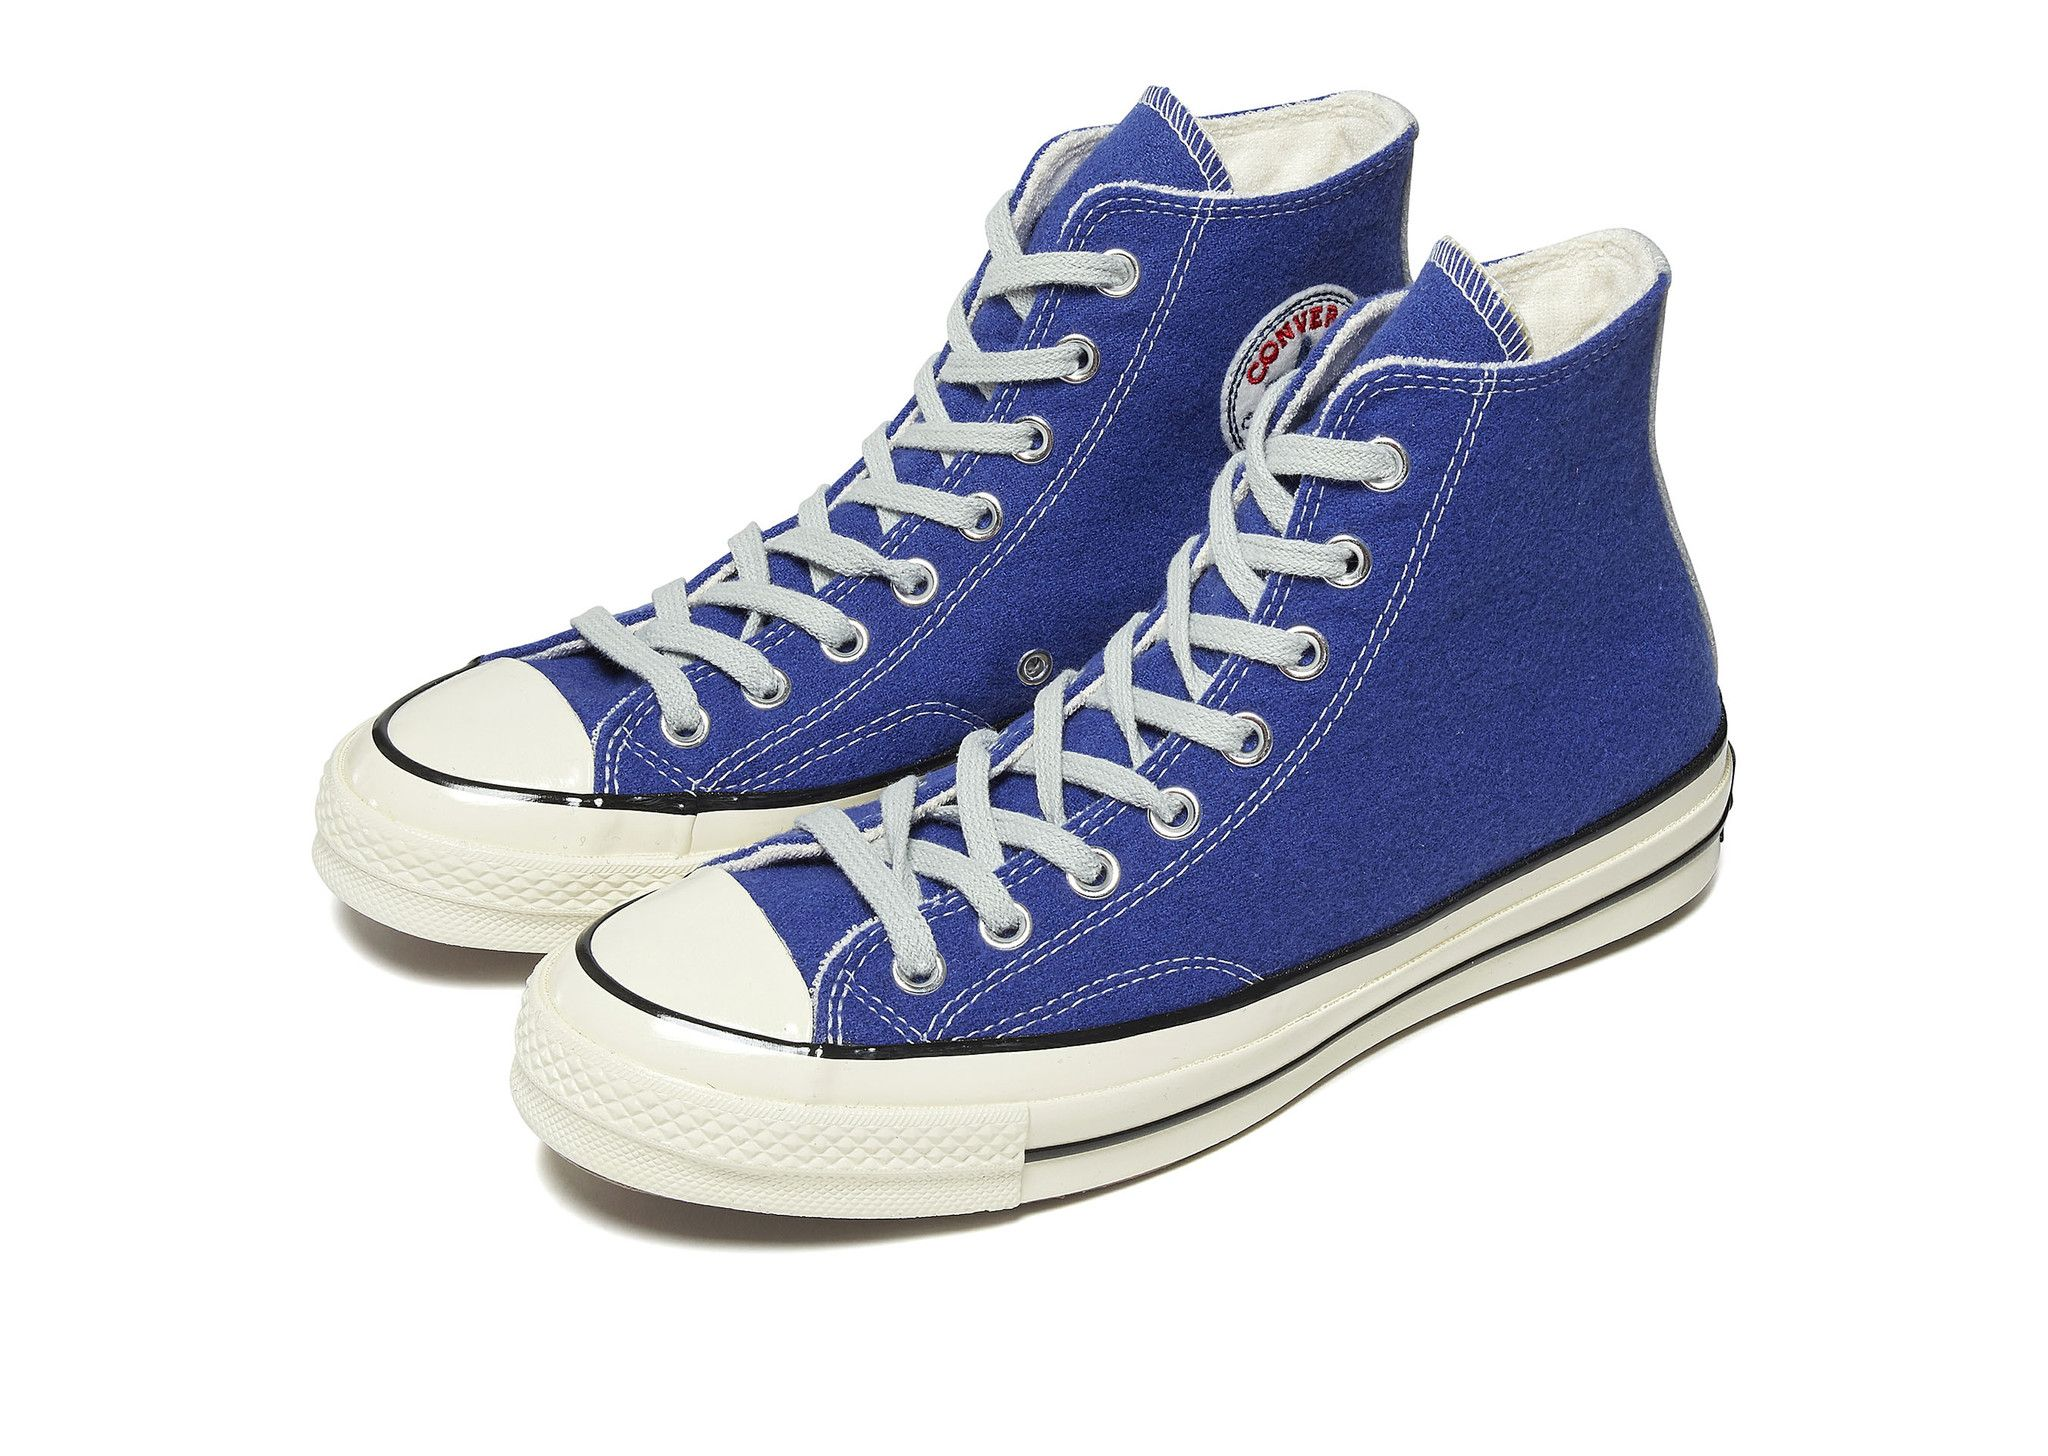 chuck taylor converse shoes 70s iconic couples from the past